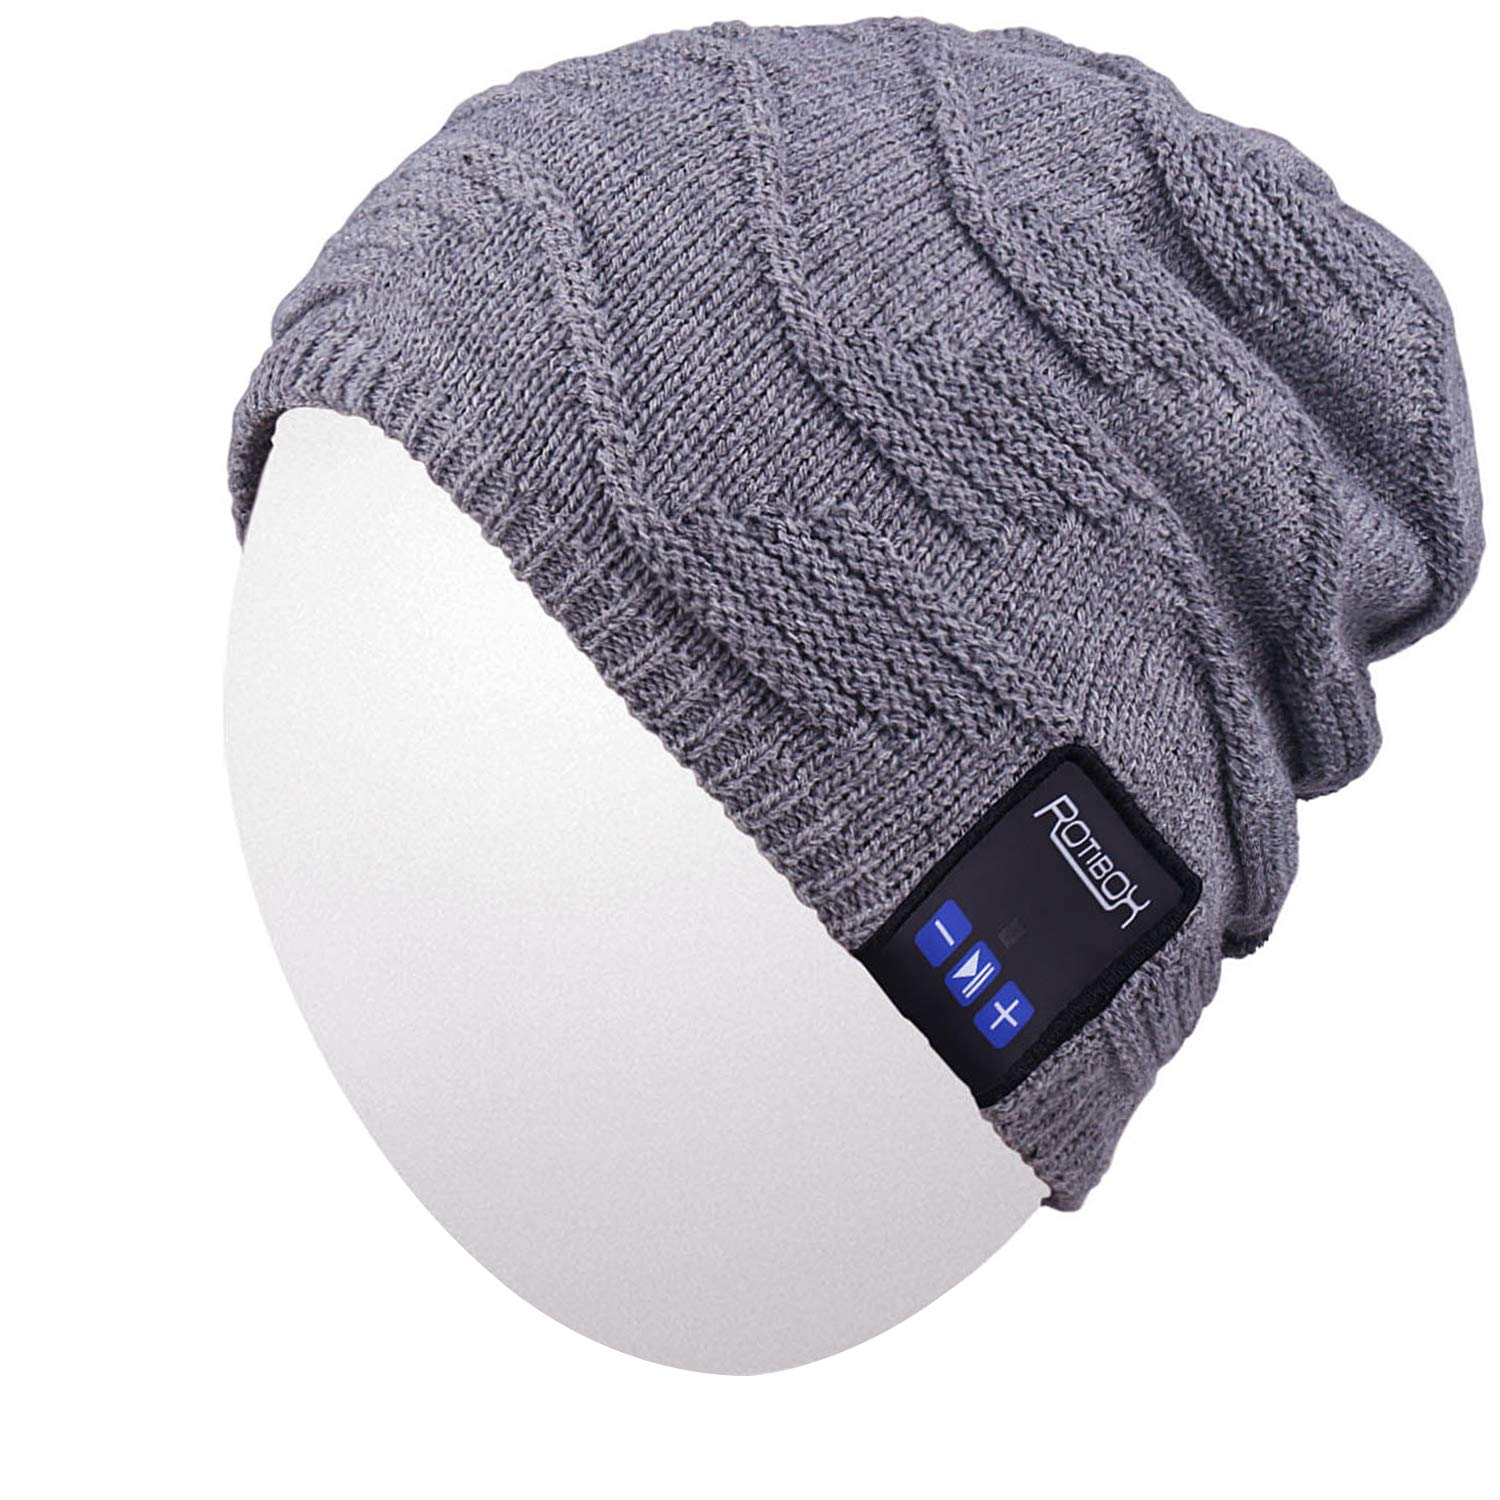 Android Cellphones Tablets iPhone Qshell Mens Womens Outdoor Bluetooth Music Beanie Hat with Stereo Speaker Headphones Microphone Hands Free and Rechargeable Battery for Cell Phones iPad